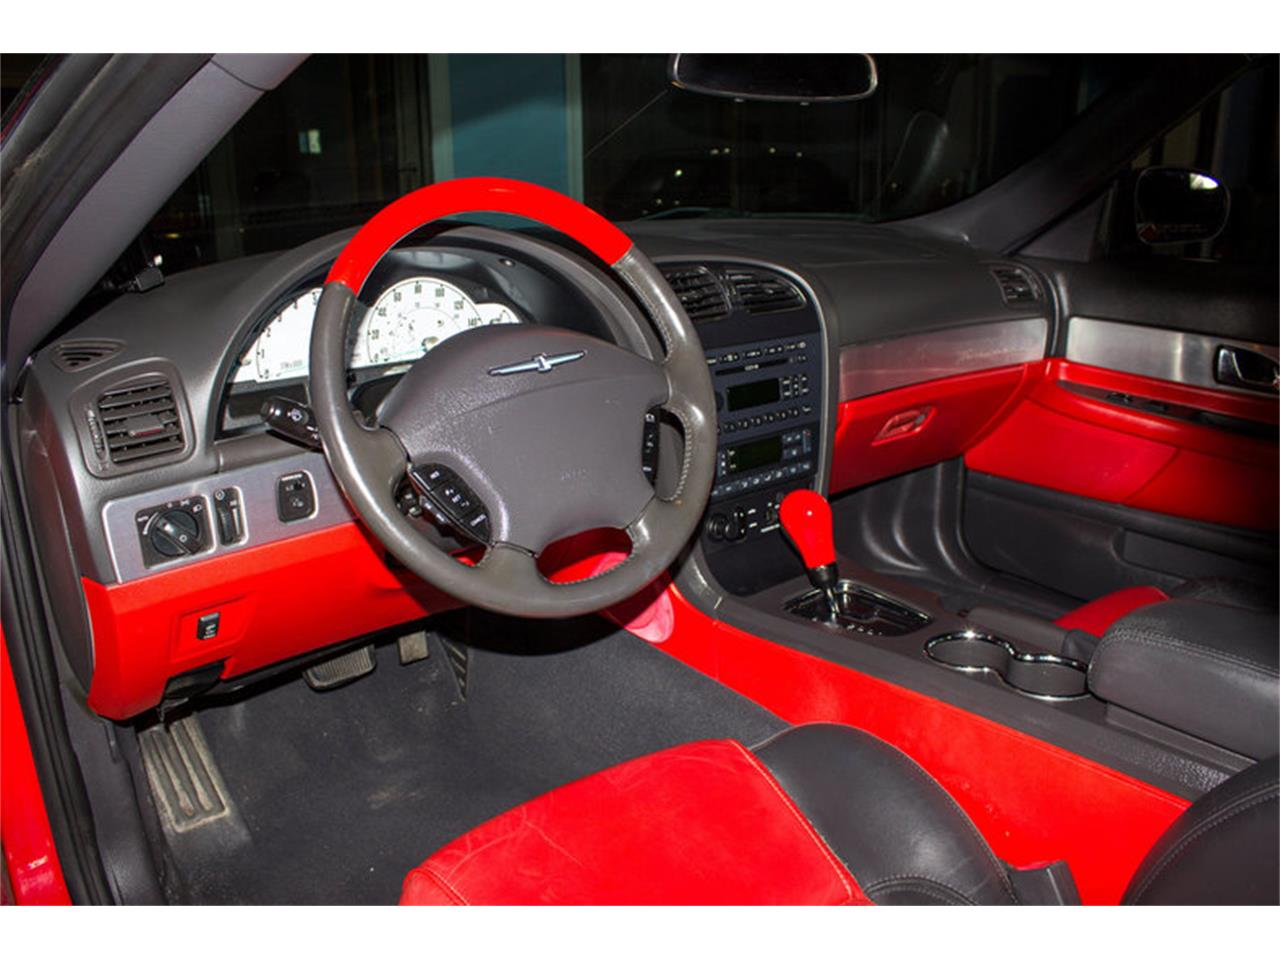 Large Picture of 2002 Ford Thunderbird - $14,997.00 - MZFZ